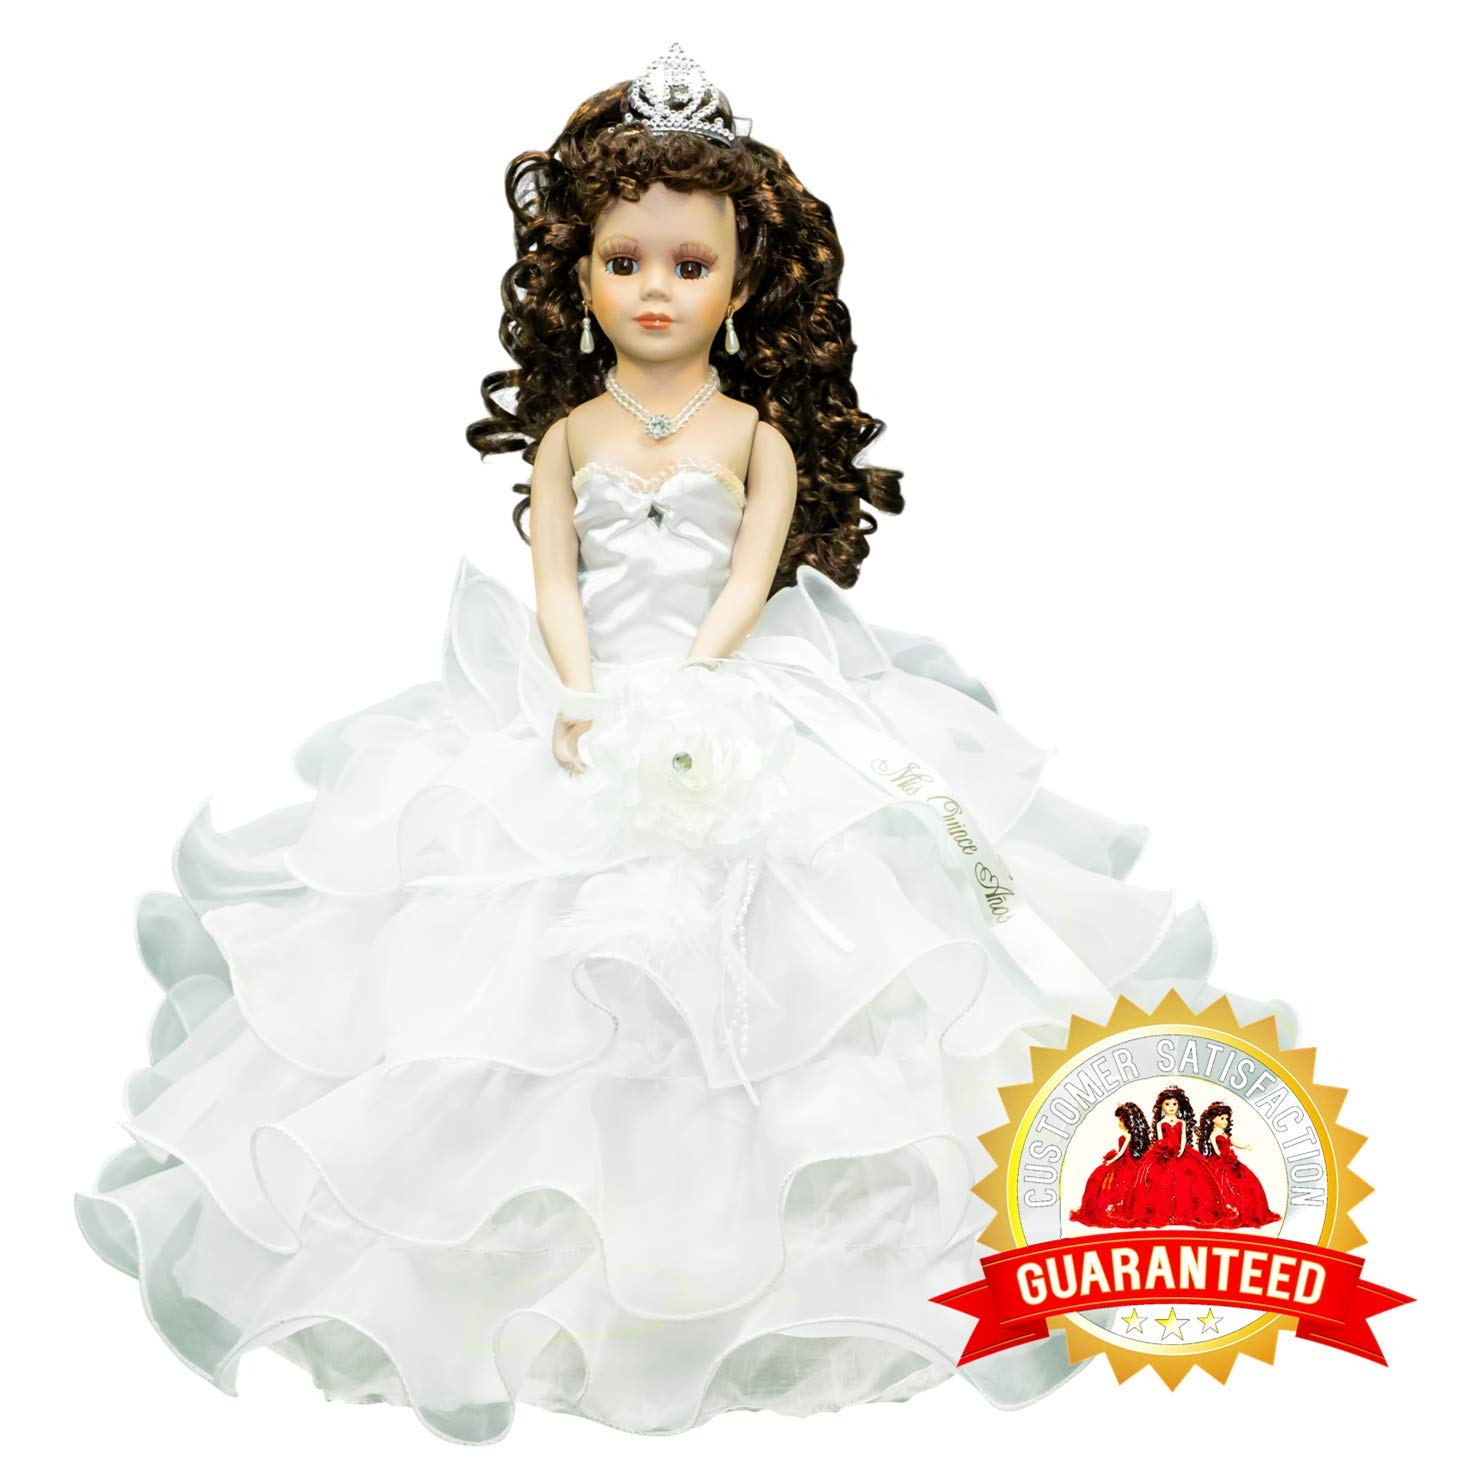 Kinnex Collections by Amanda 18'' Porcelain Quinceanera Umbrella Doll (Table Centerpiece) ~ White ~ KW18728-1